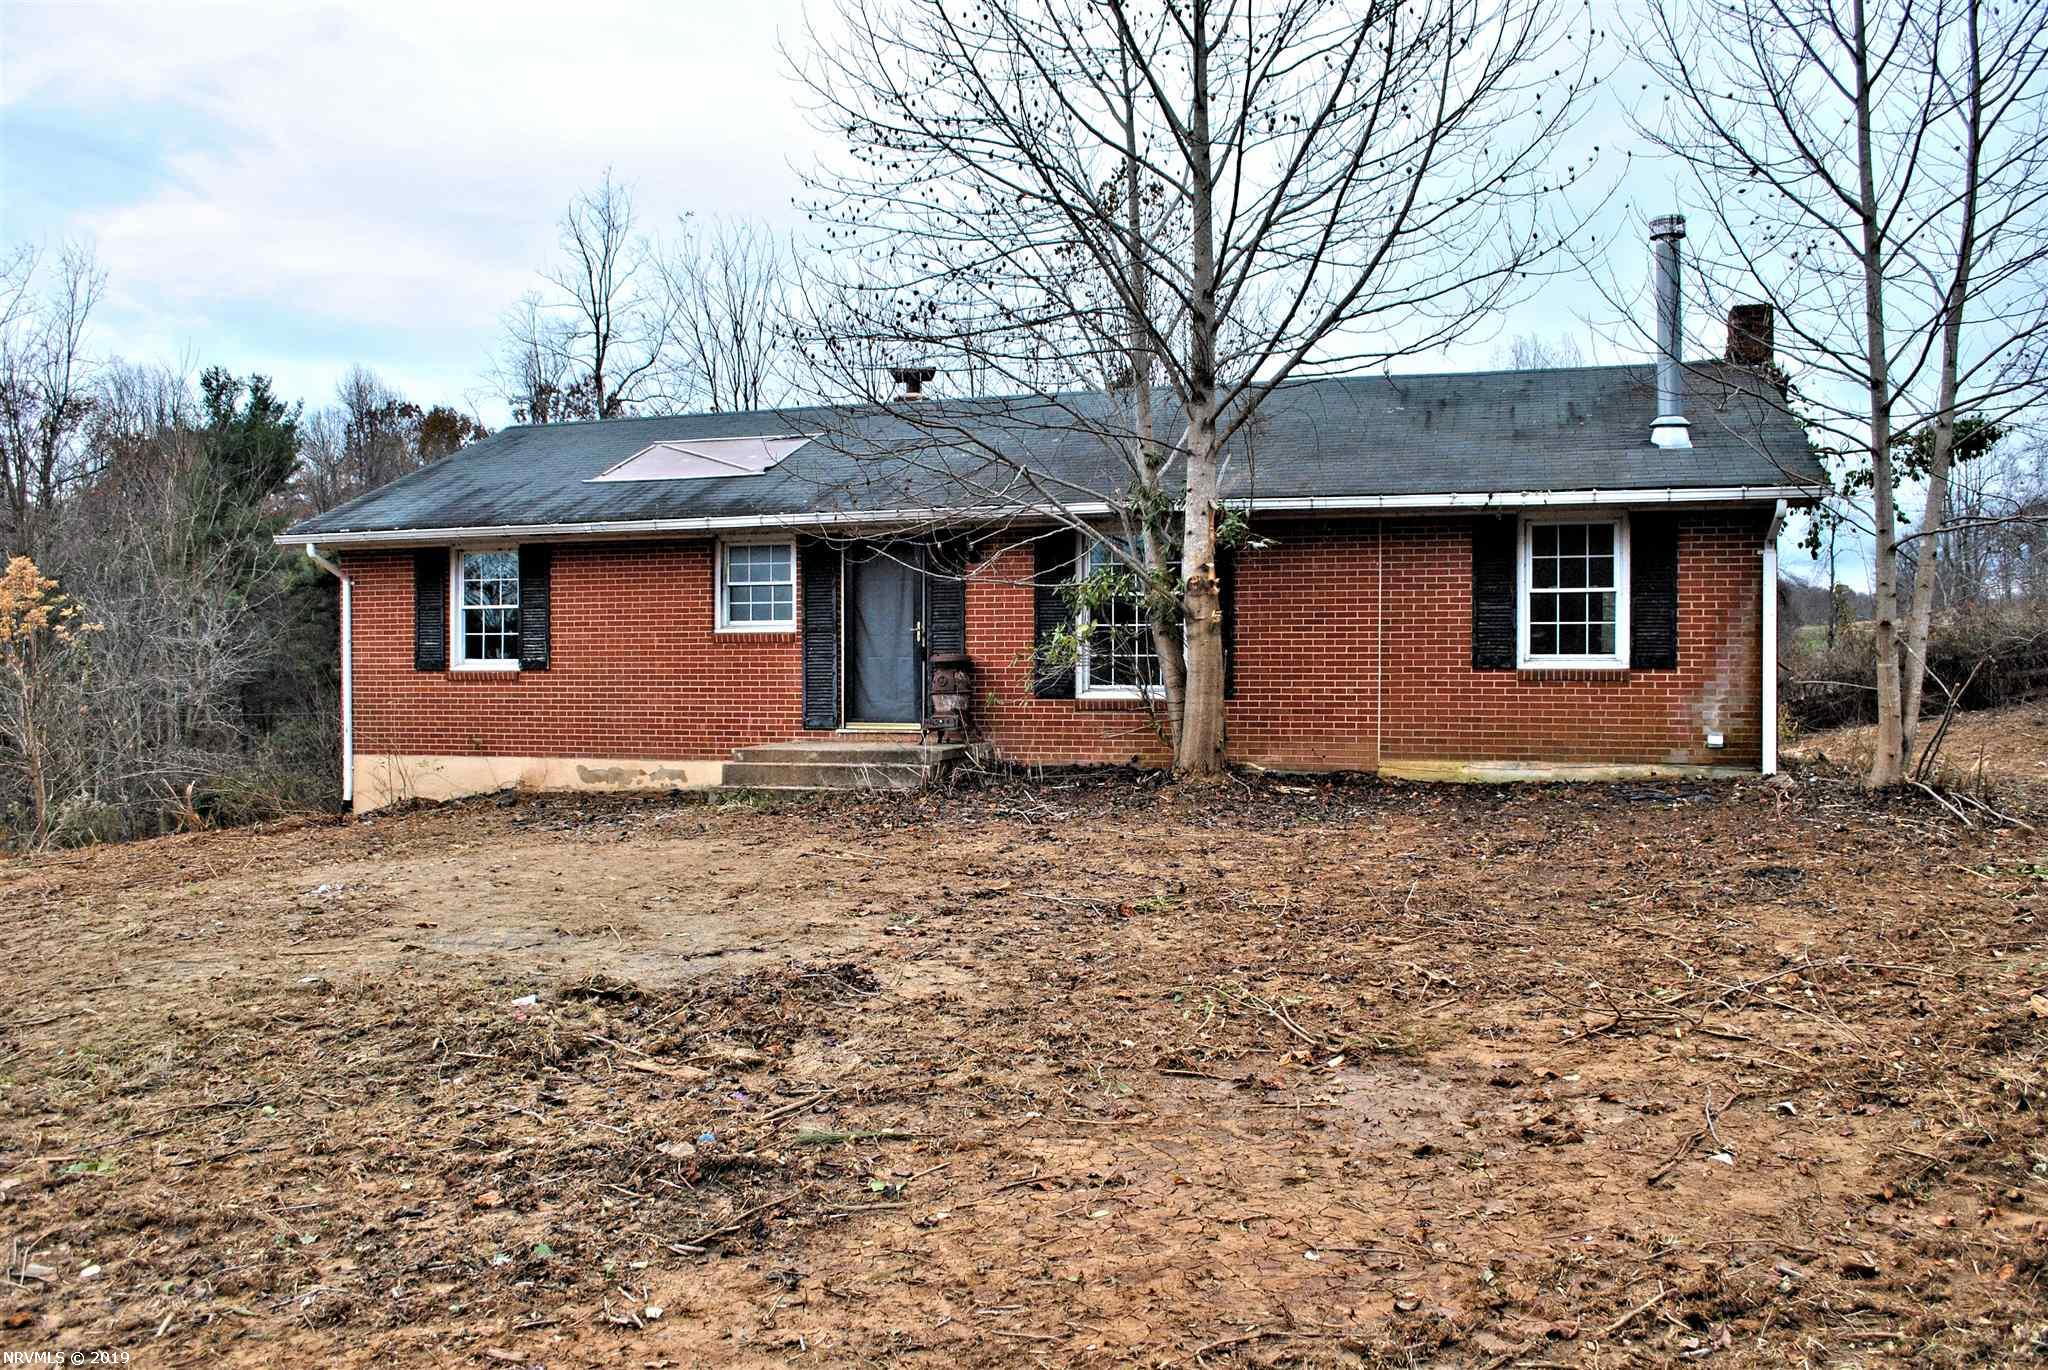 Country living on this 7.5 acres with a 2BR, 1BA brick ranch with room to expand in the building over a three-stall barn. Walk-out basement is unfinished and ready for your updates.